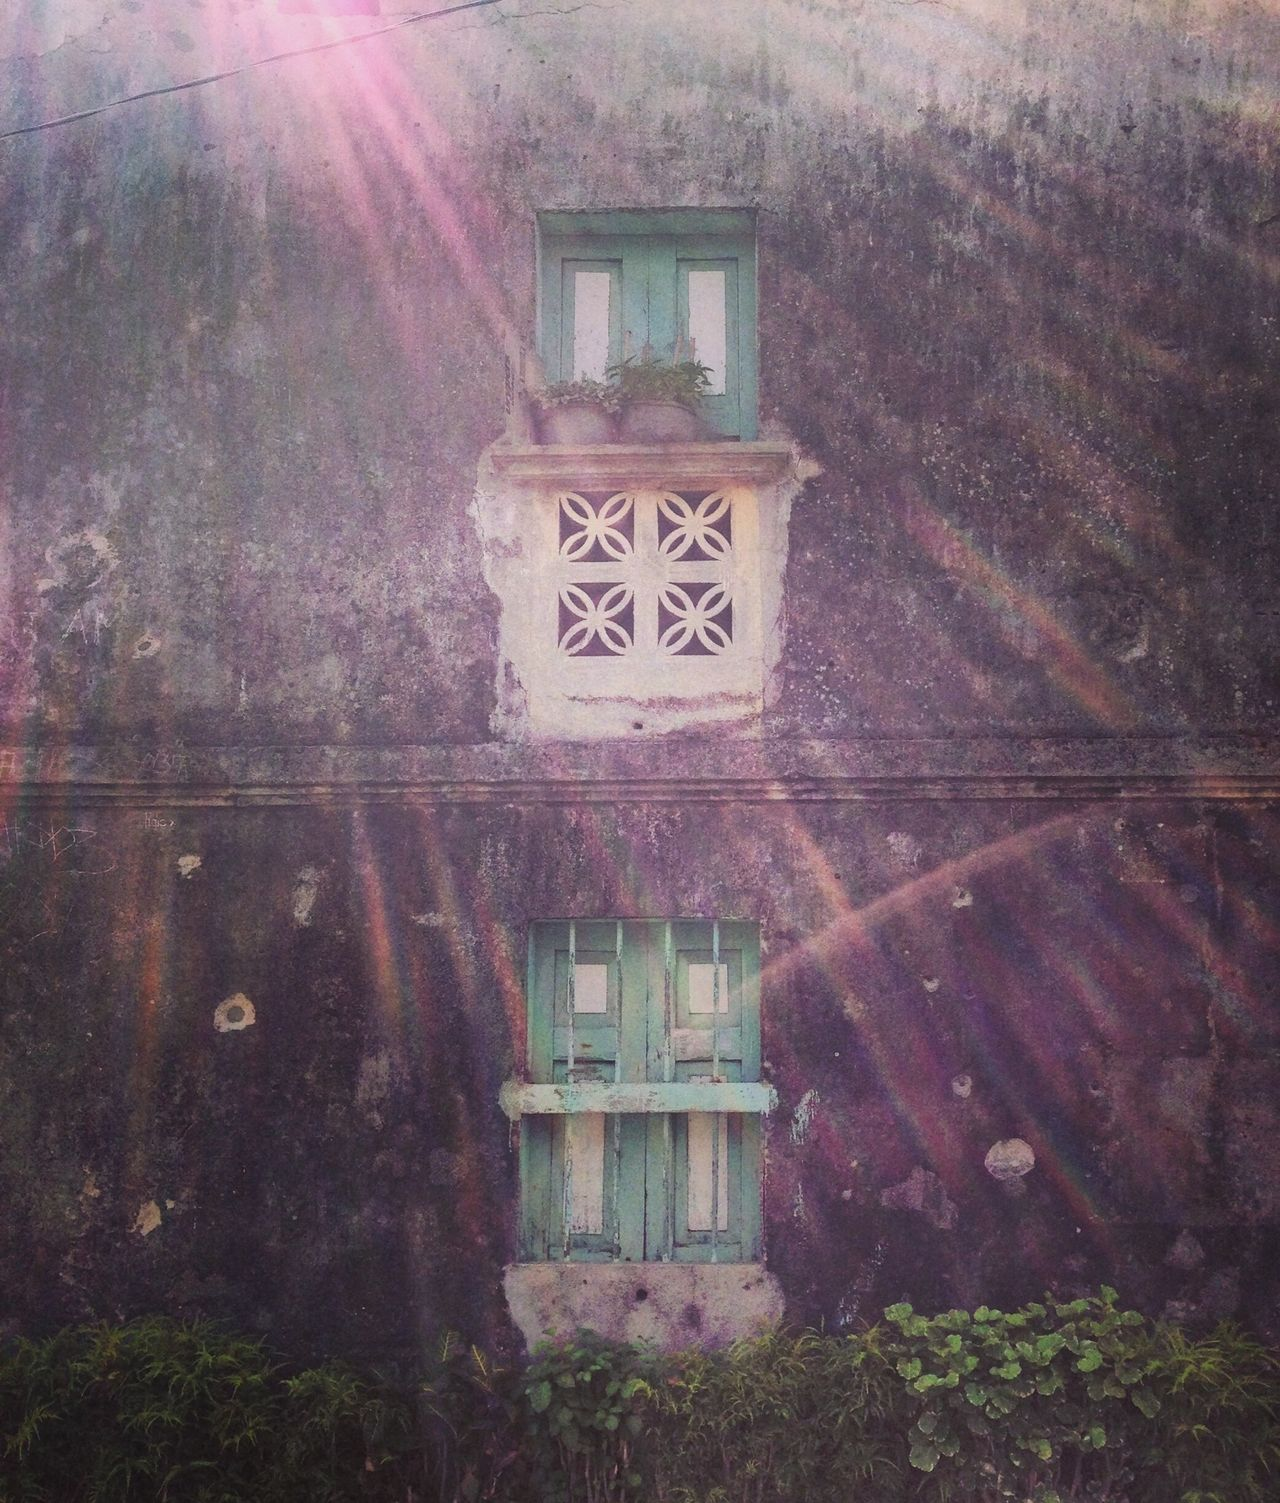 Pastel Power Pretty Houses Pretty Window Pretty Doors Natural Lighting Well Lit Dramatic Lighting Dramatic Light Batanes Philippines Eyeem Philippines IPhoneography Iphonephotography Iphoneonly Q